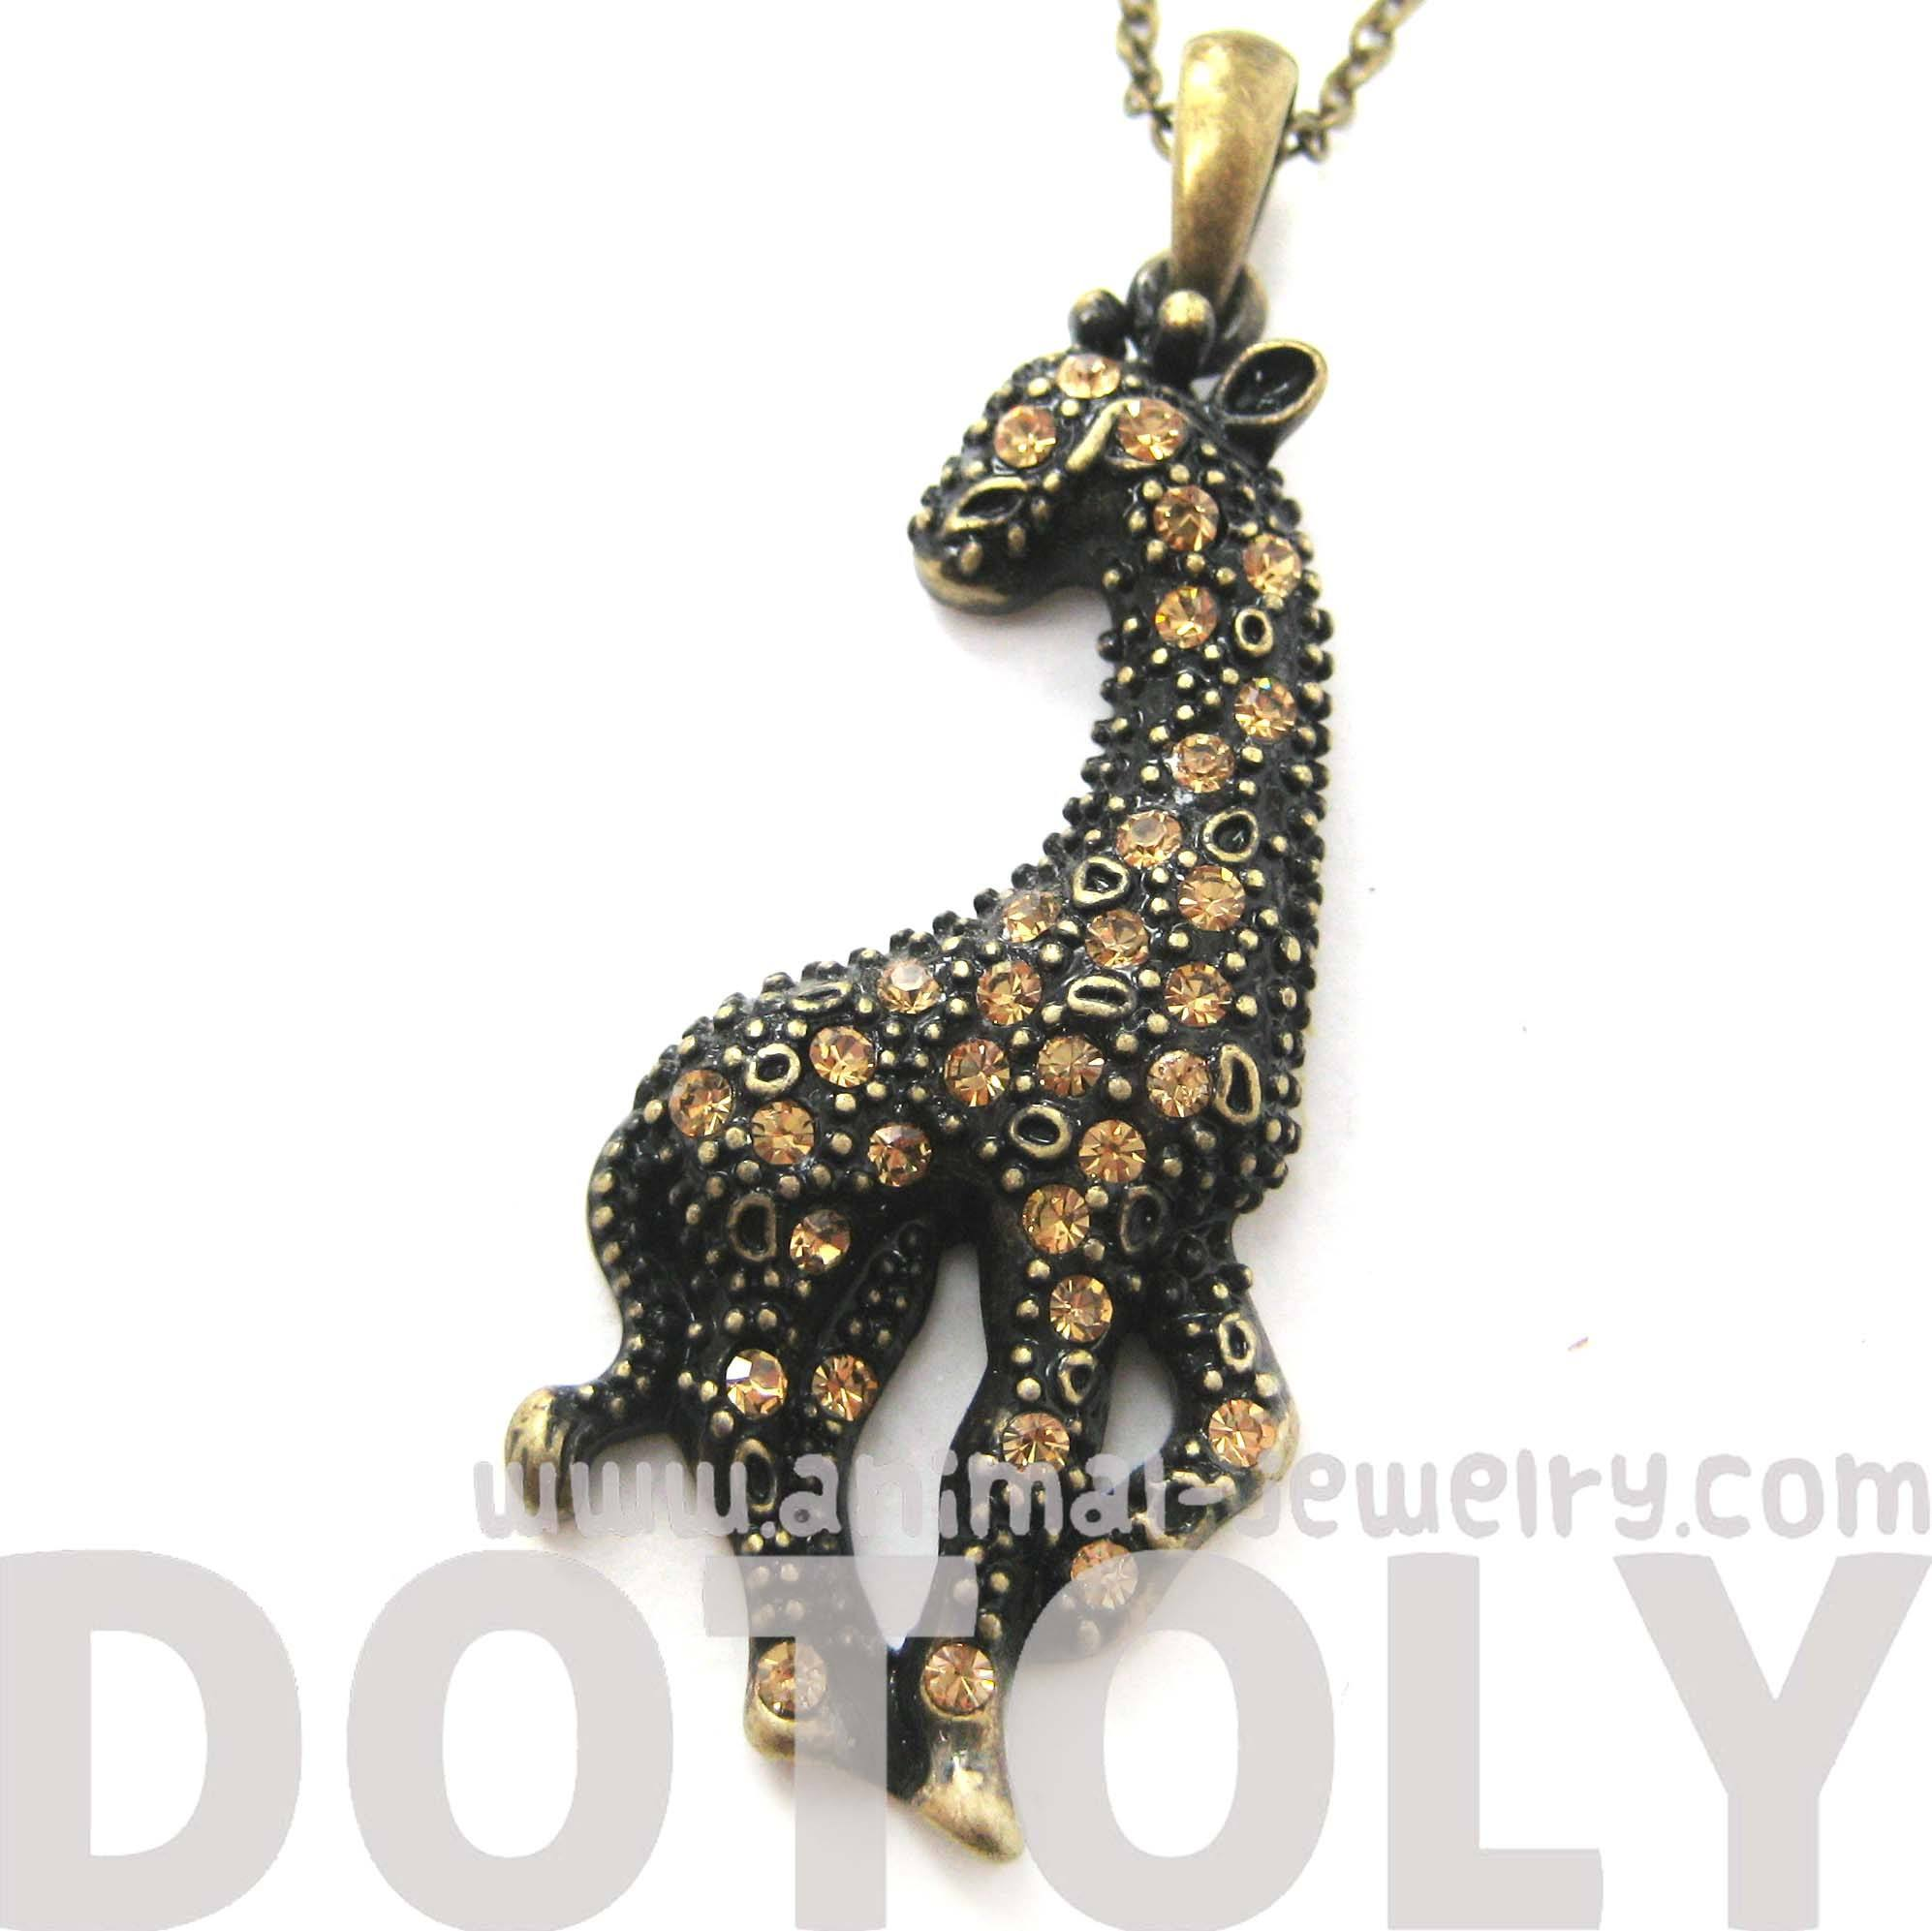 giraffe-shaped-animal-pendant-necklace-in-brass-with-rhinestones-dotoly